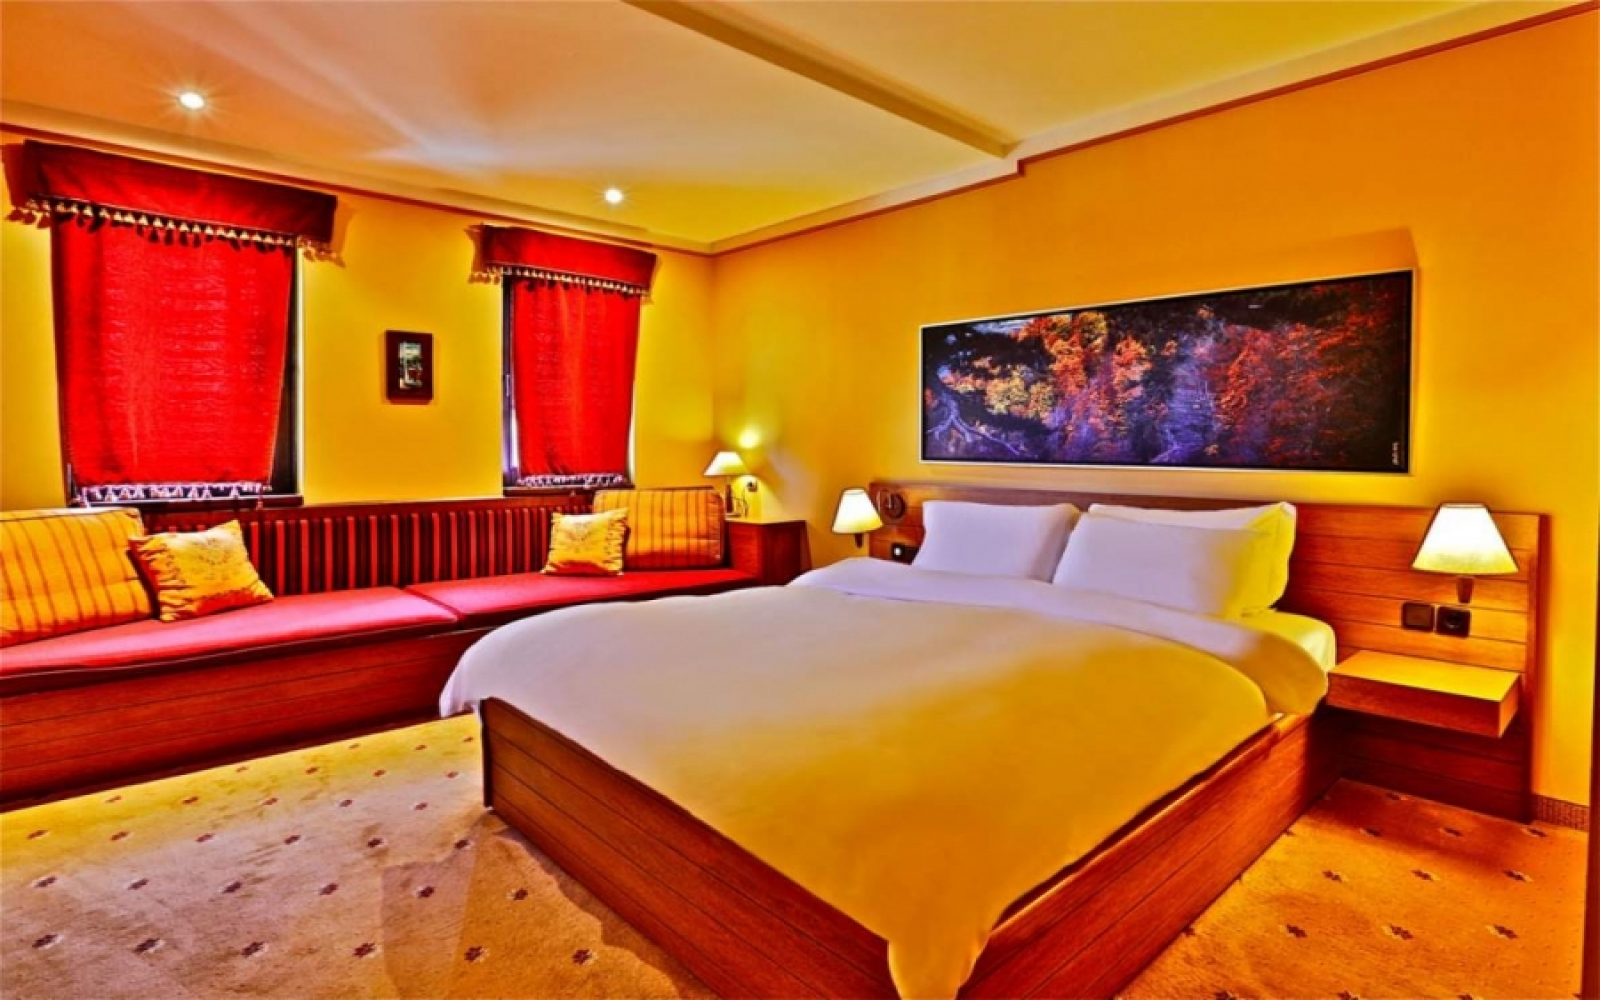 THE OFFER FOR DOUBLE ROOM